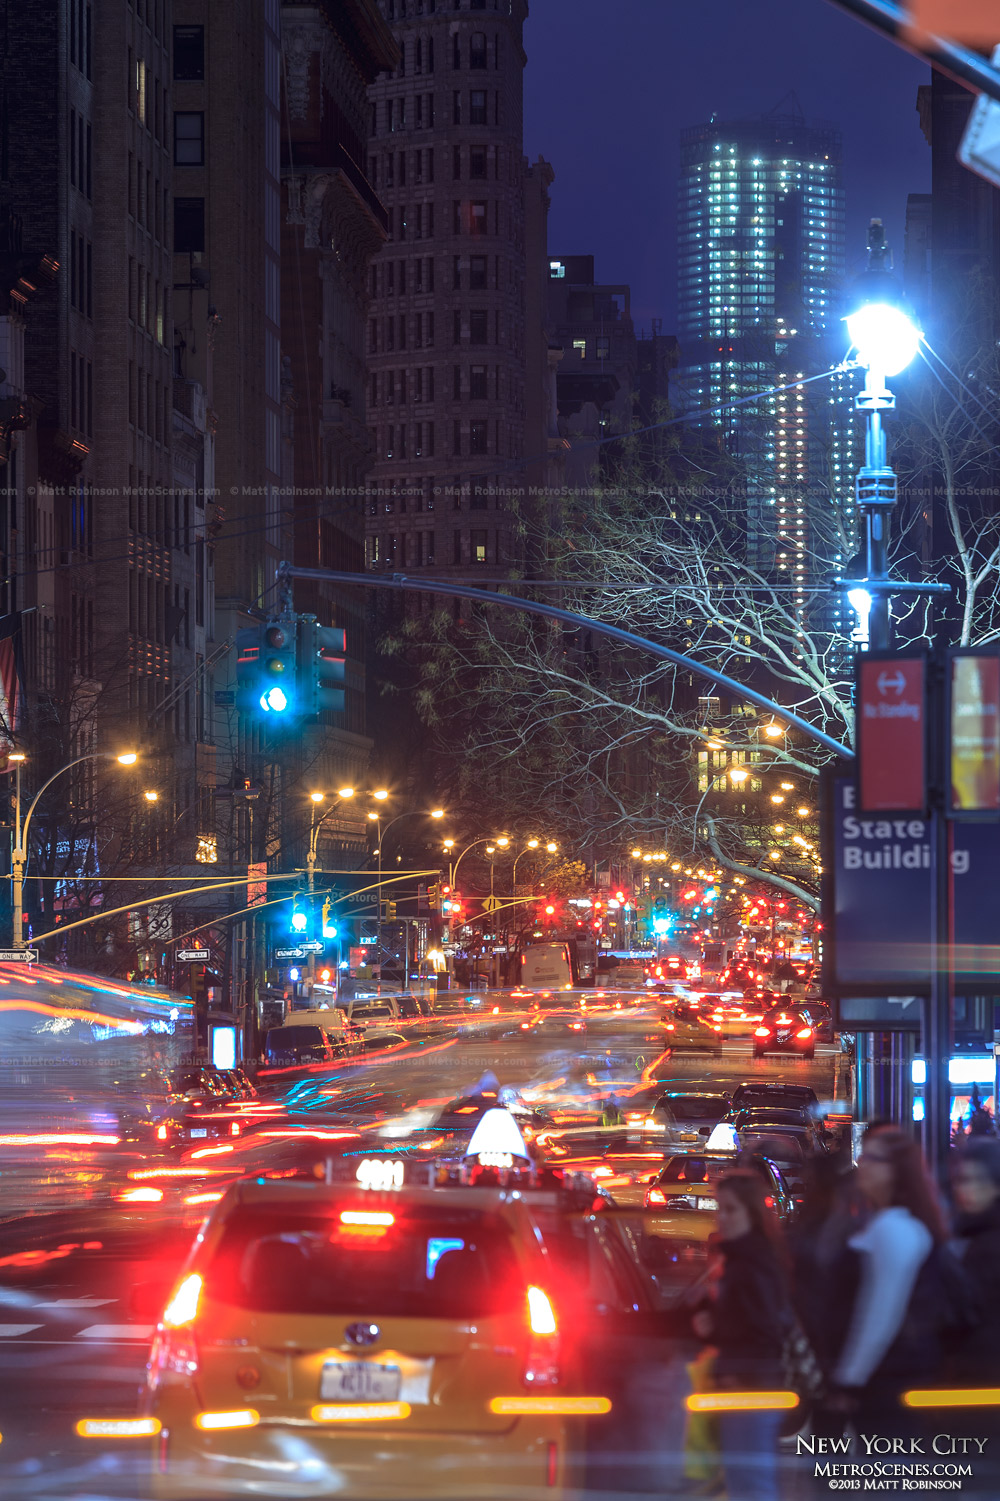 Looking down Fifth Avenue towards 4 World Trade Center from 34 Street